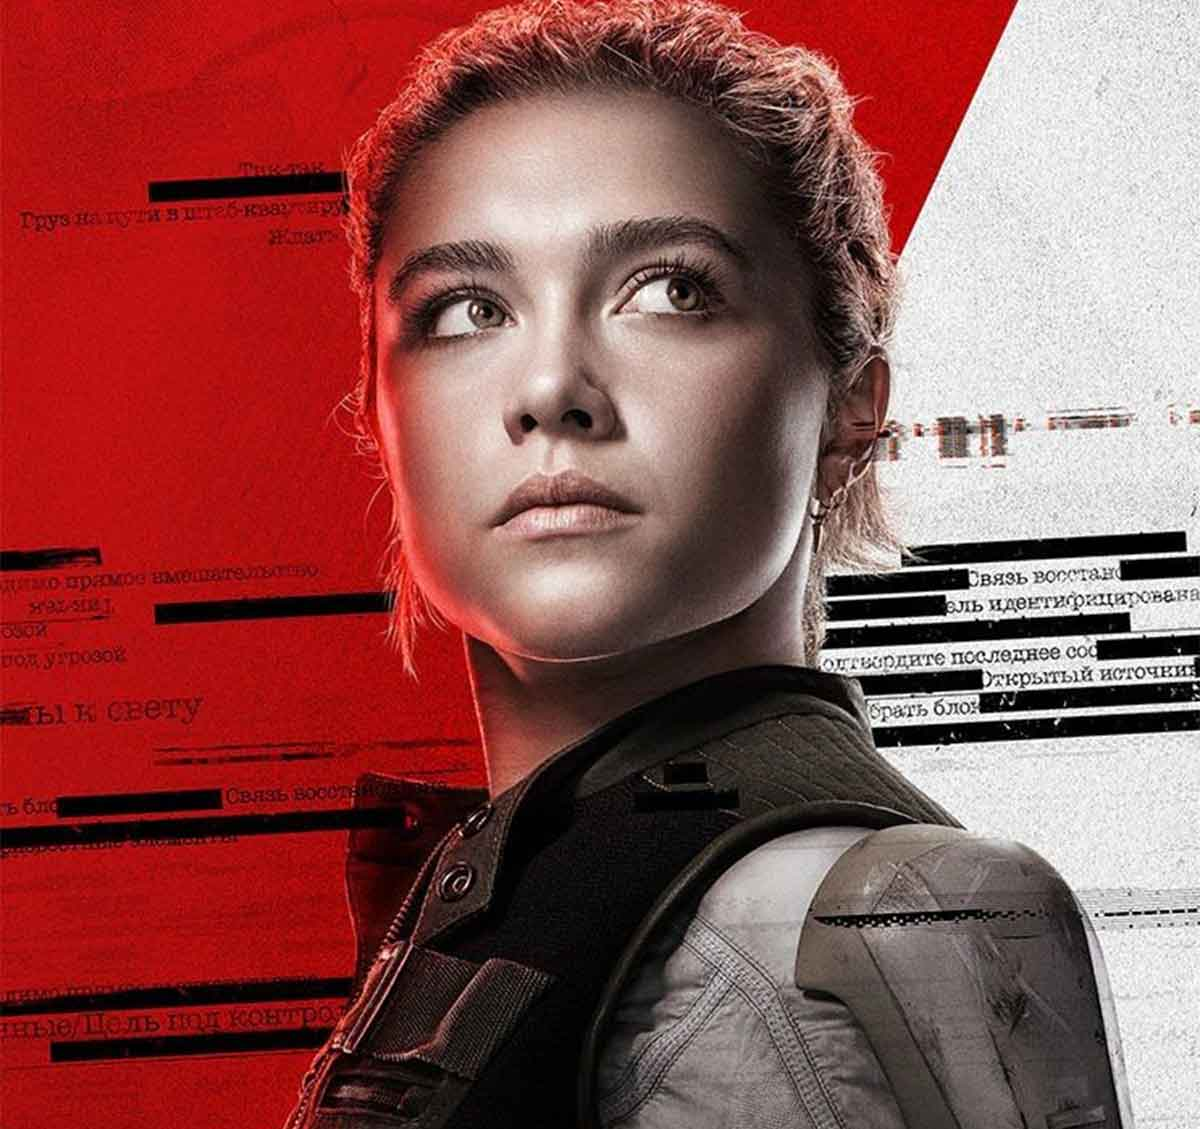 Black Widow: Description of the 4 main characters